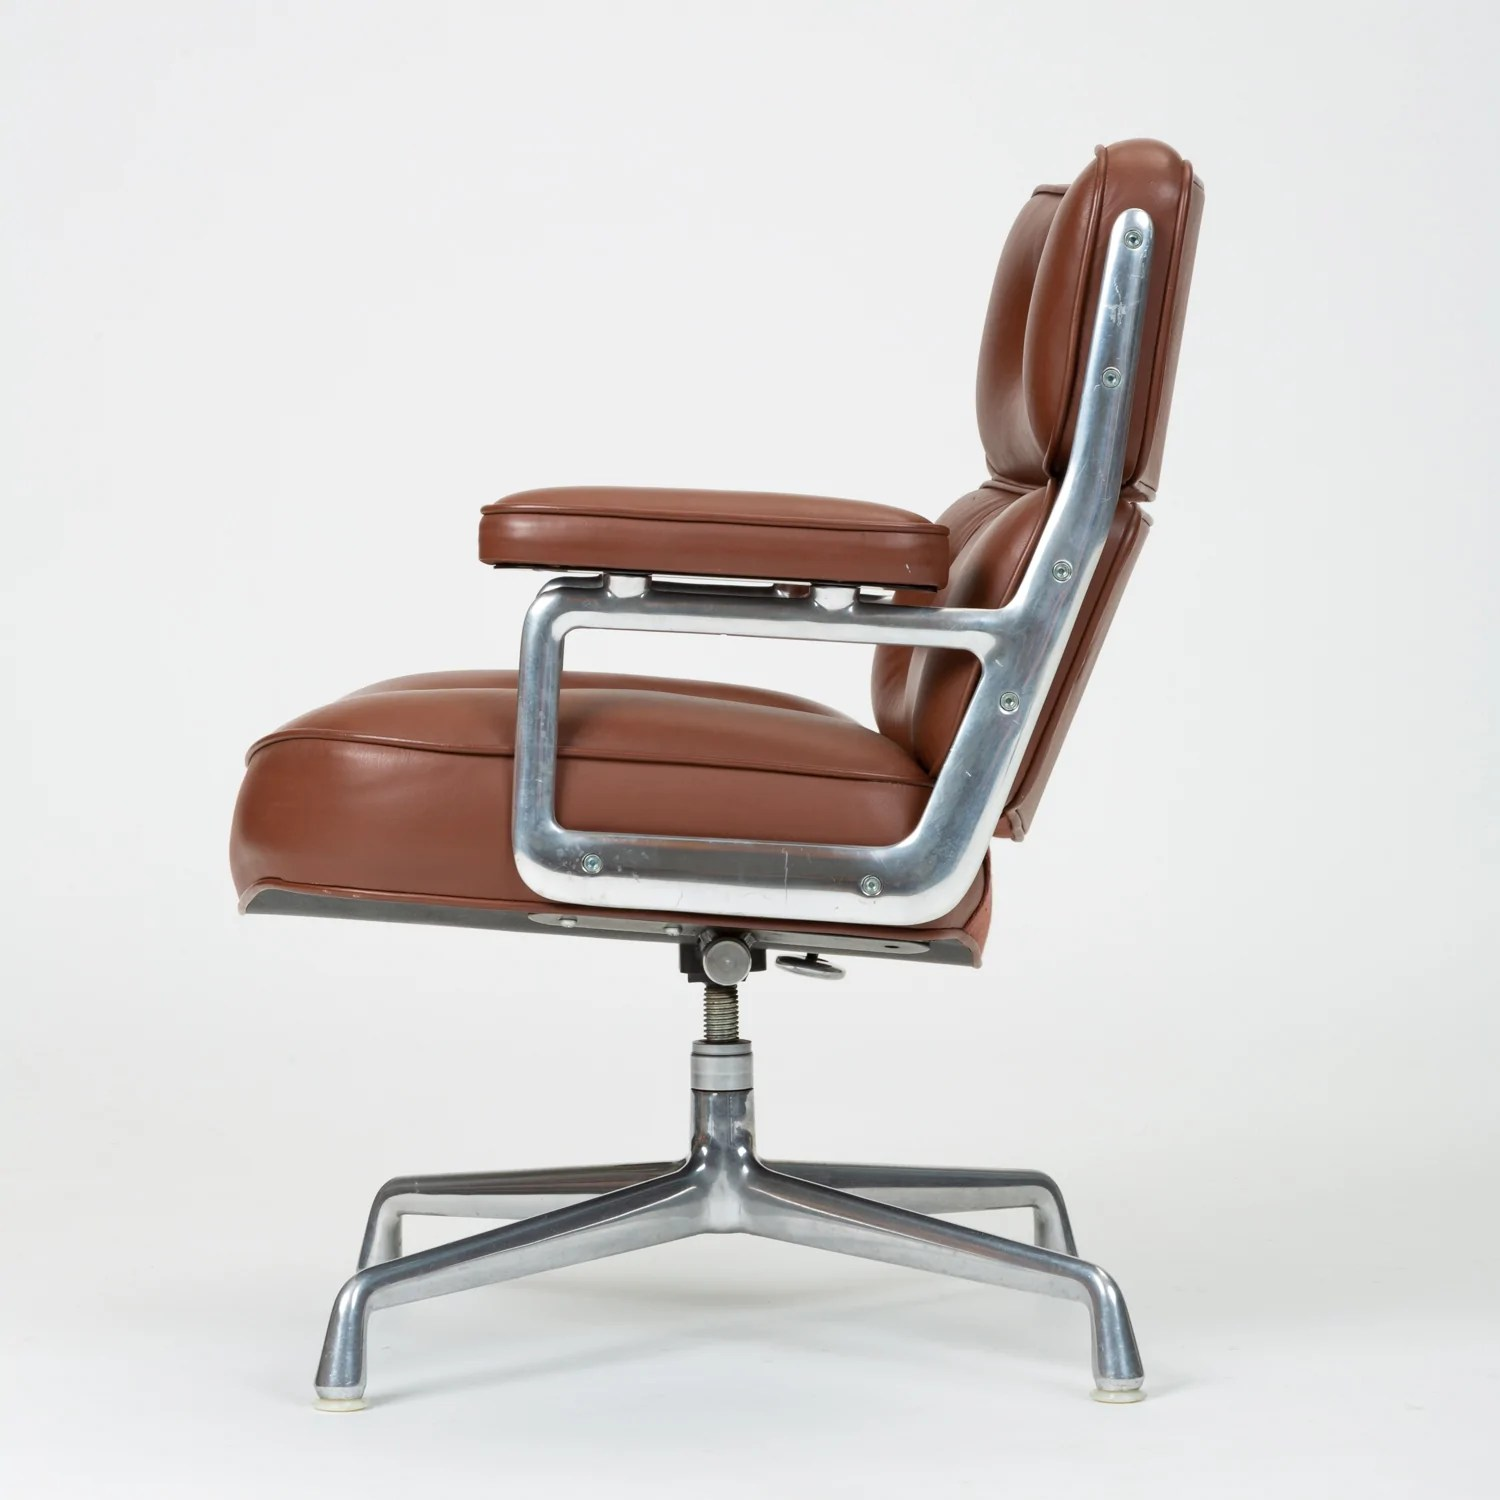 Ray And Charles Eames Ray Charles Eames Time Life Lobby Chair In Chocolate Leather